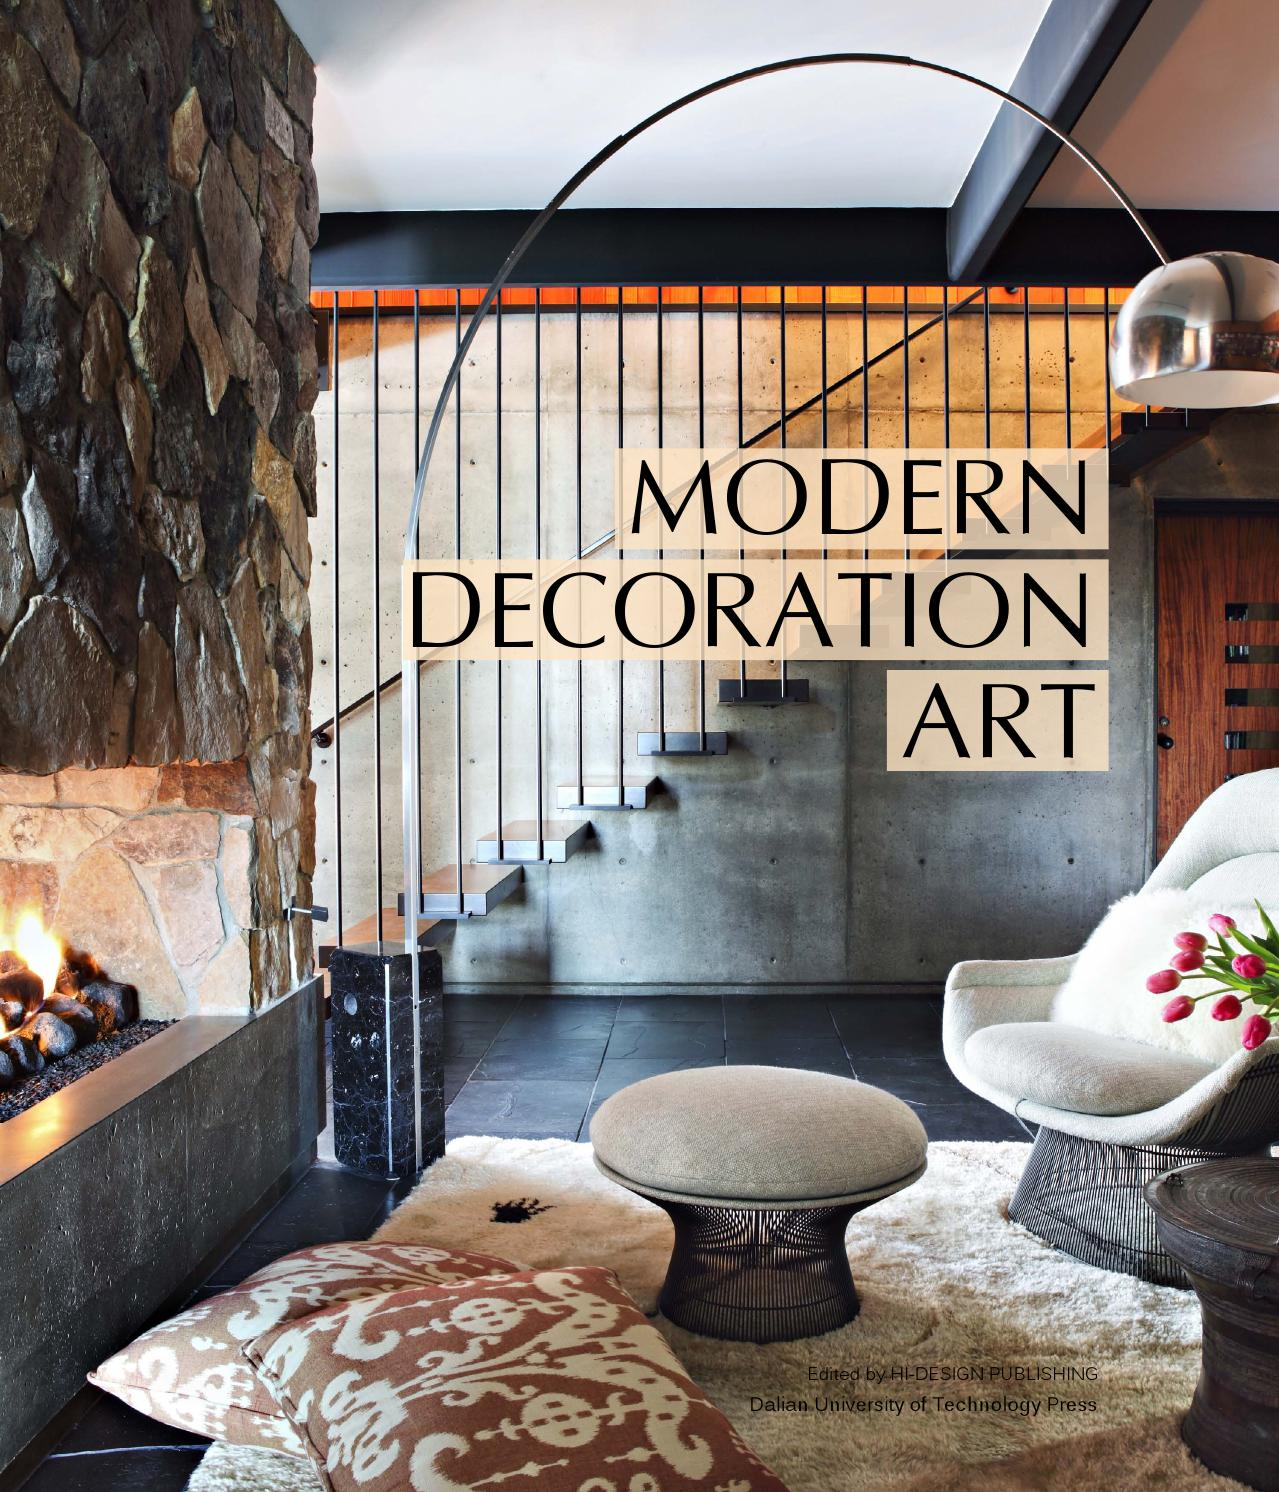 Modern decoration art by hi design international publishing hk co ltd issuu